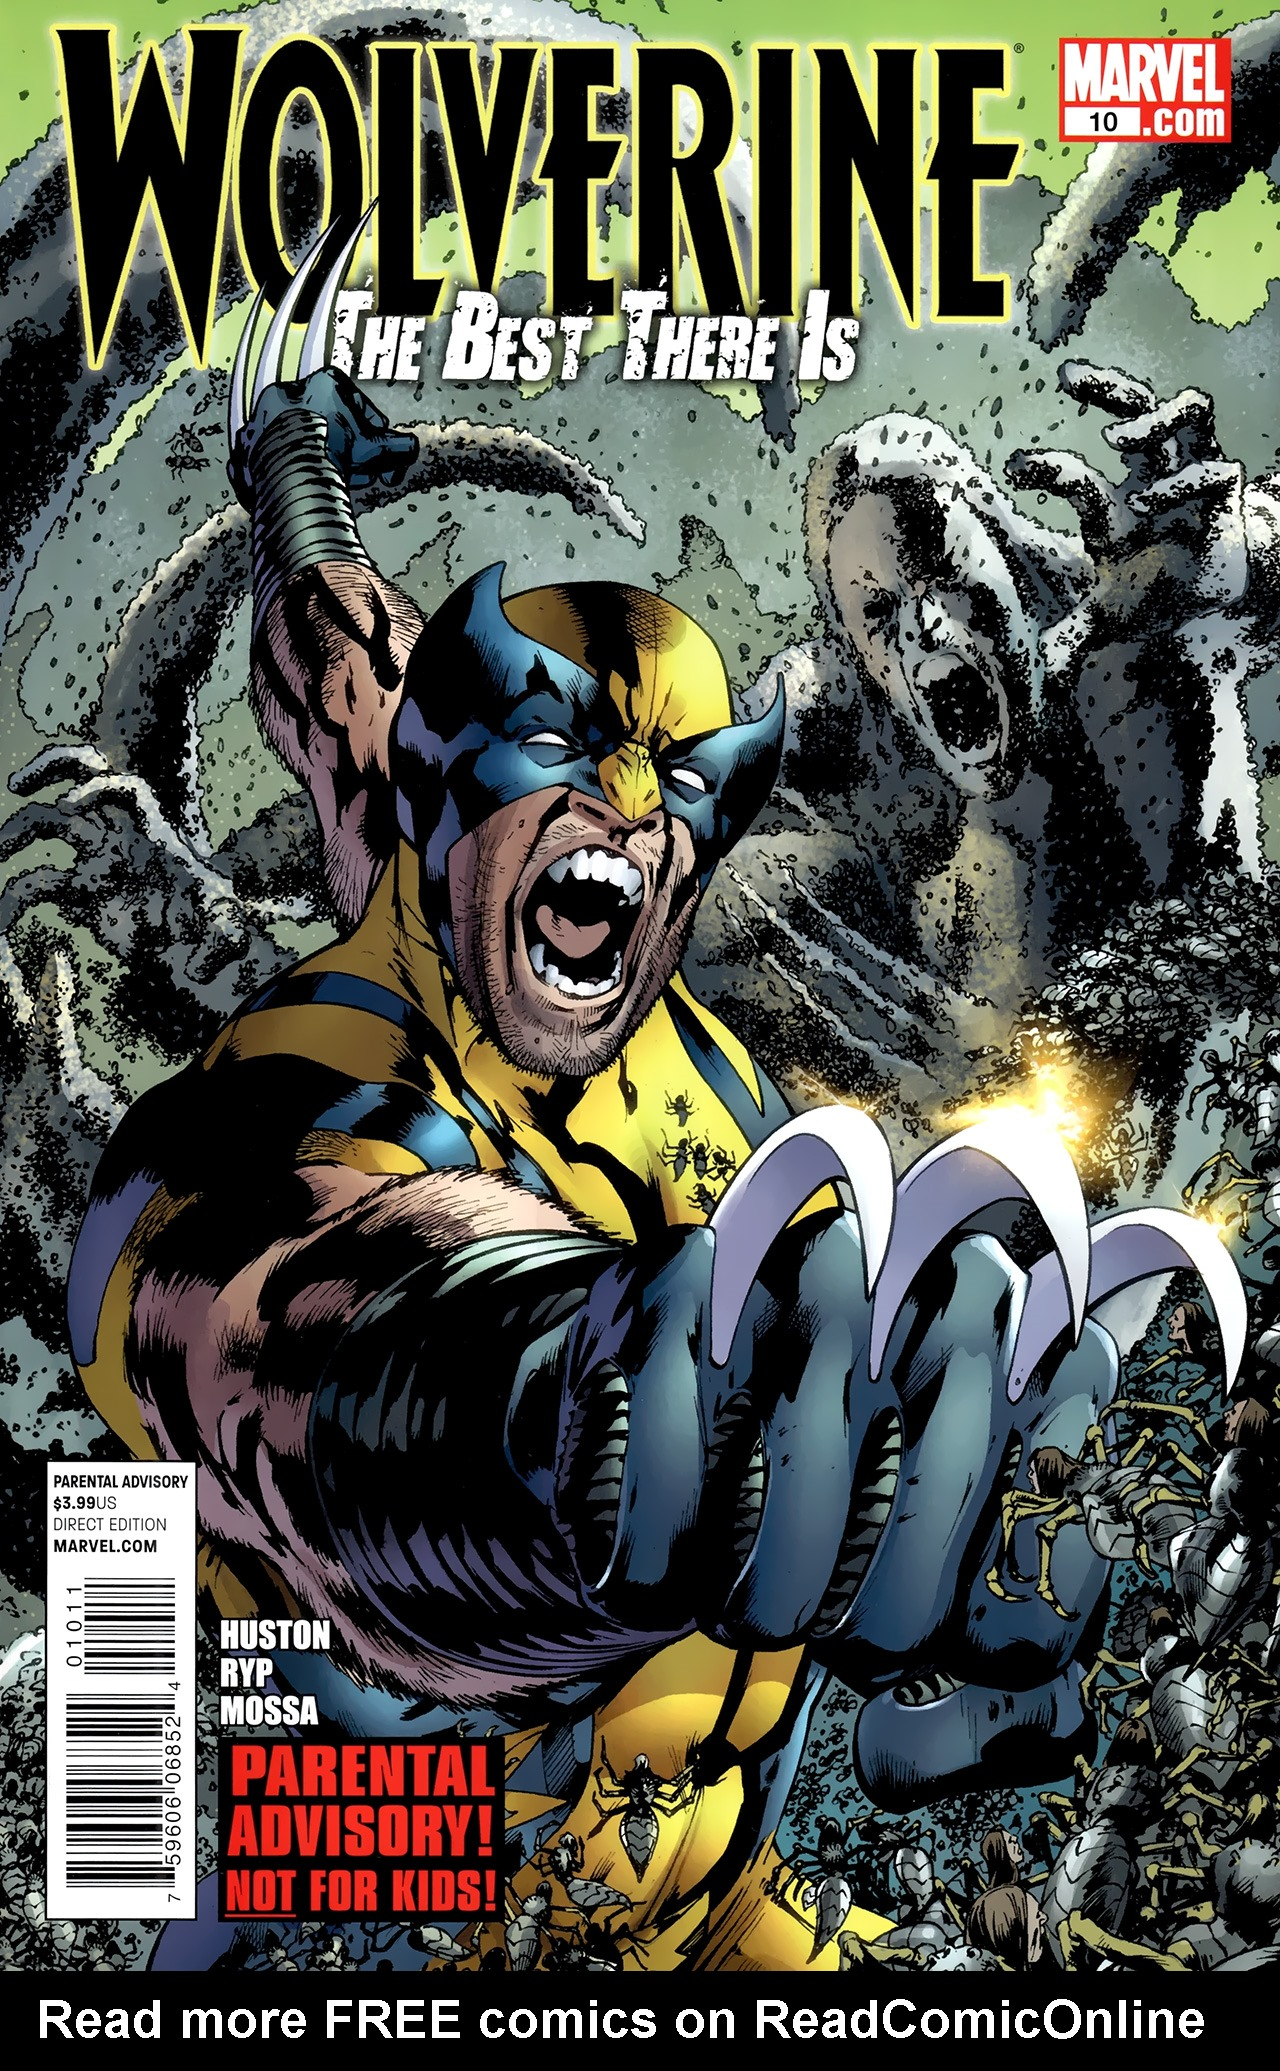 Read online Wolverine: The Best There Is comic -  Issue #10 - 1